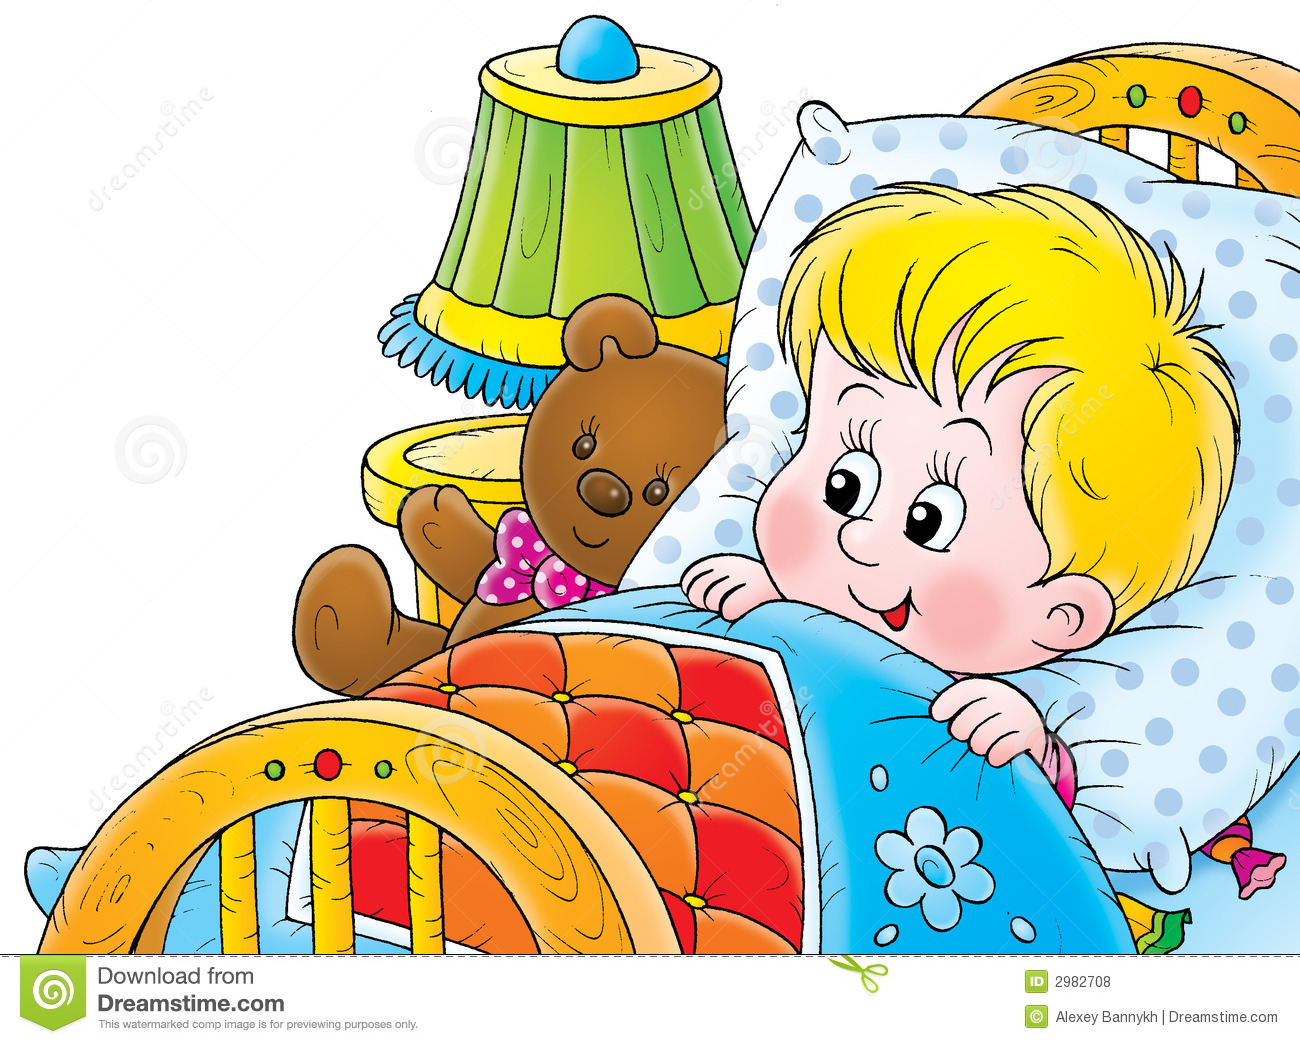 clipart of a girl waking up - photo #37